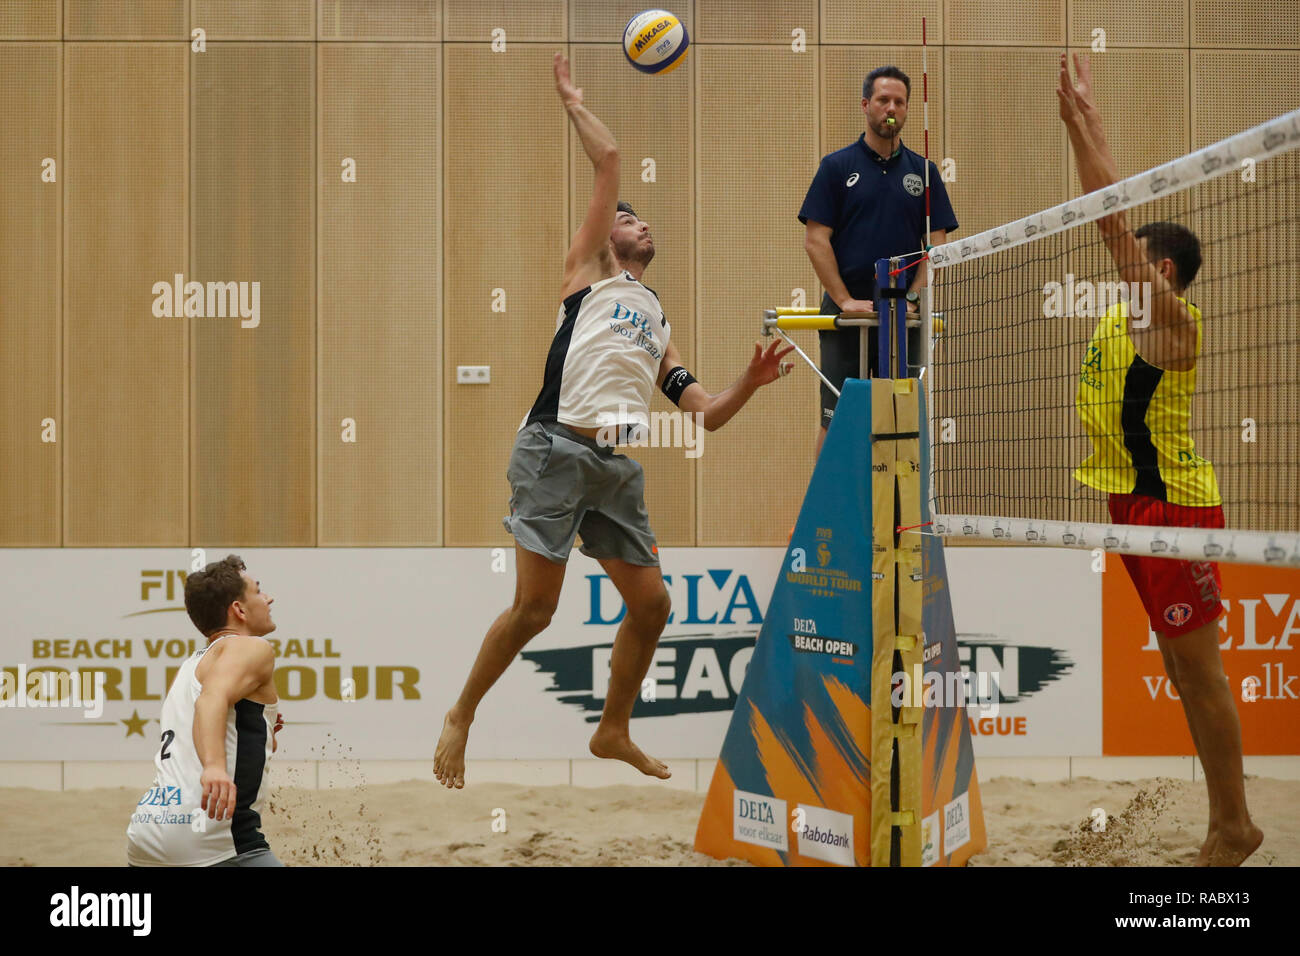 The Hague, The Netherlands 03 january 2019 Beachvolleybal Dutch National Championships    Beachvolleybal DELA Beach The Hague Open 2019 (L-R) Quentin Metral (1), Yves Haussener (2) of Switzerland - Stock Image